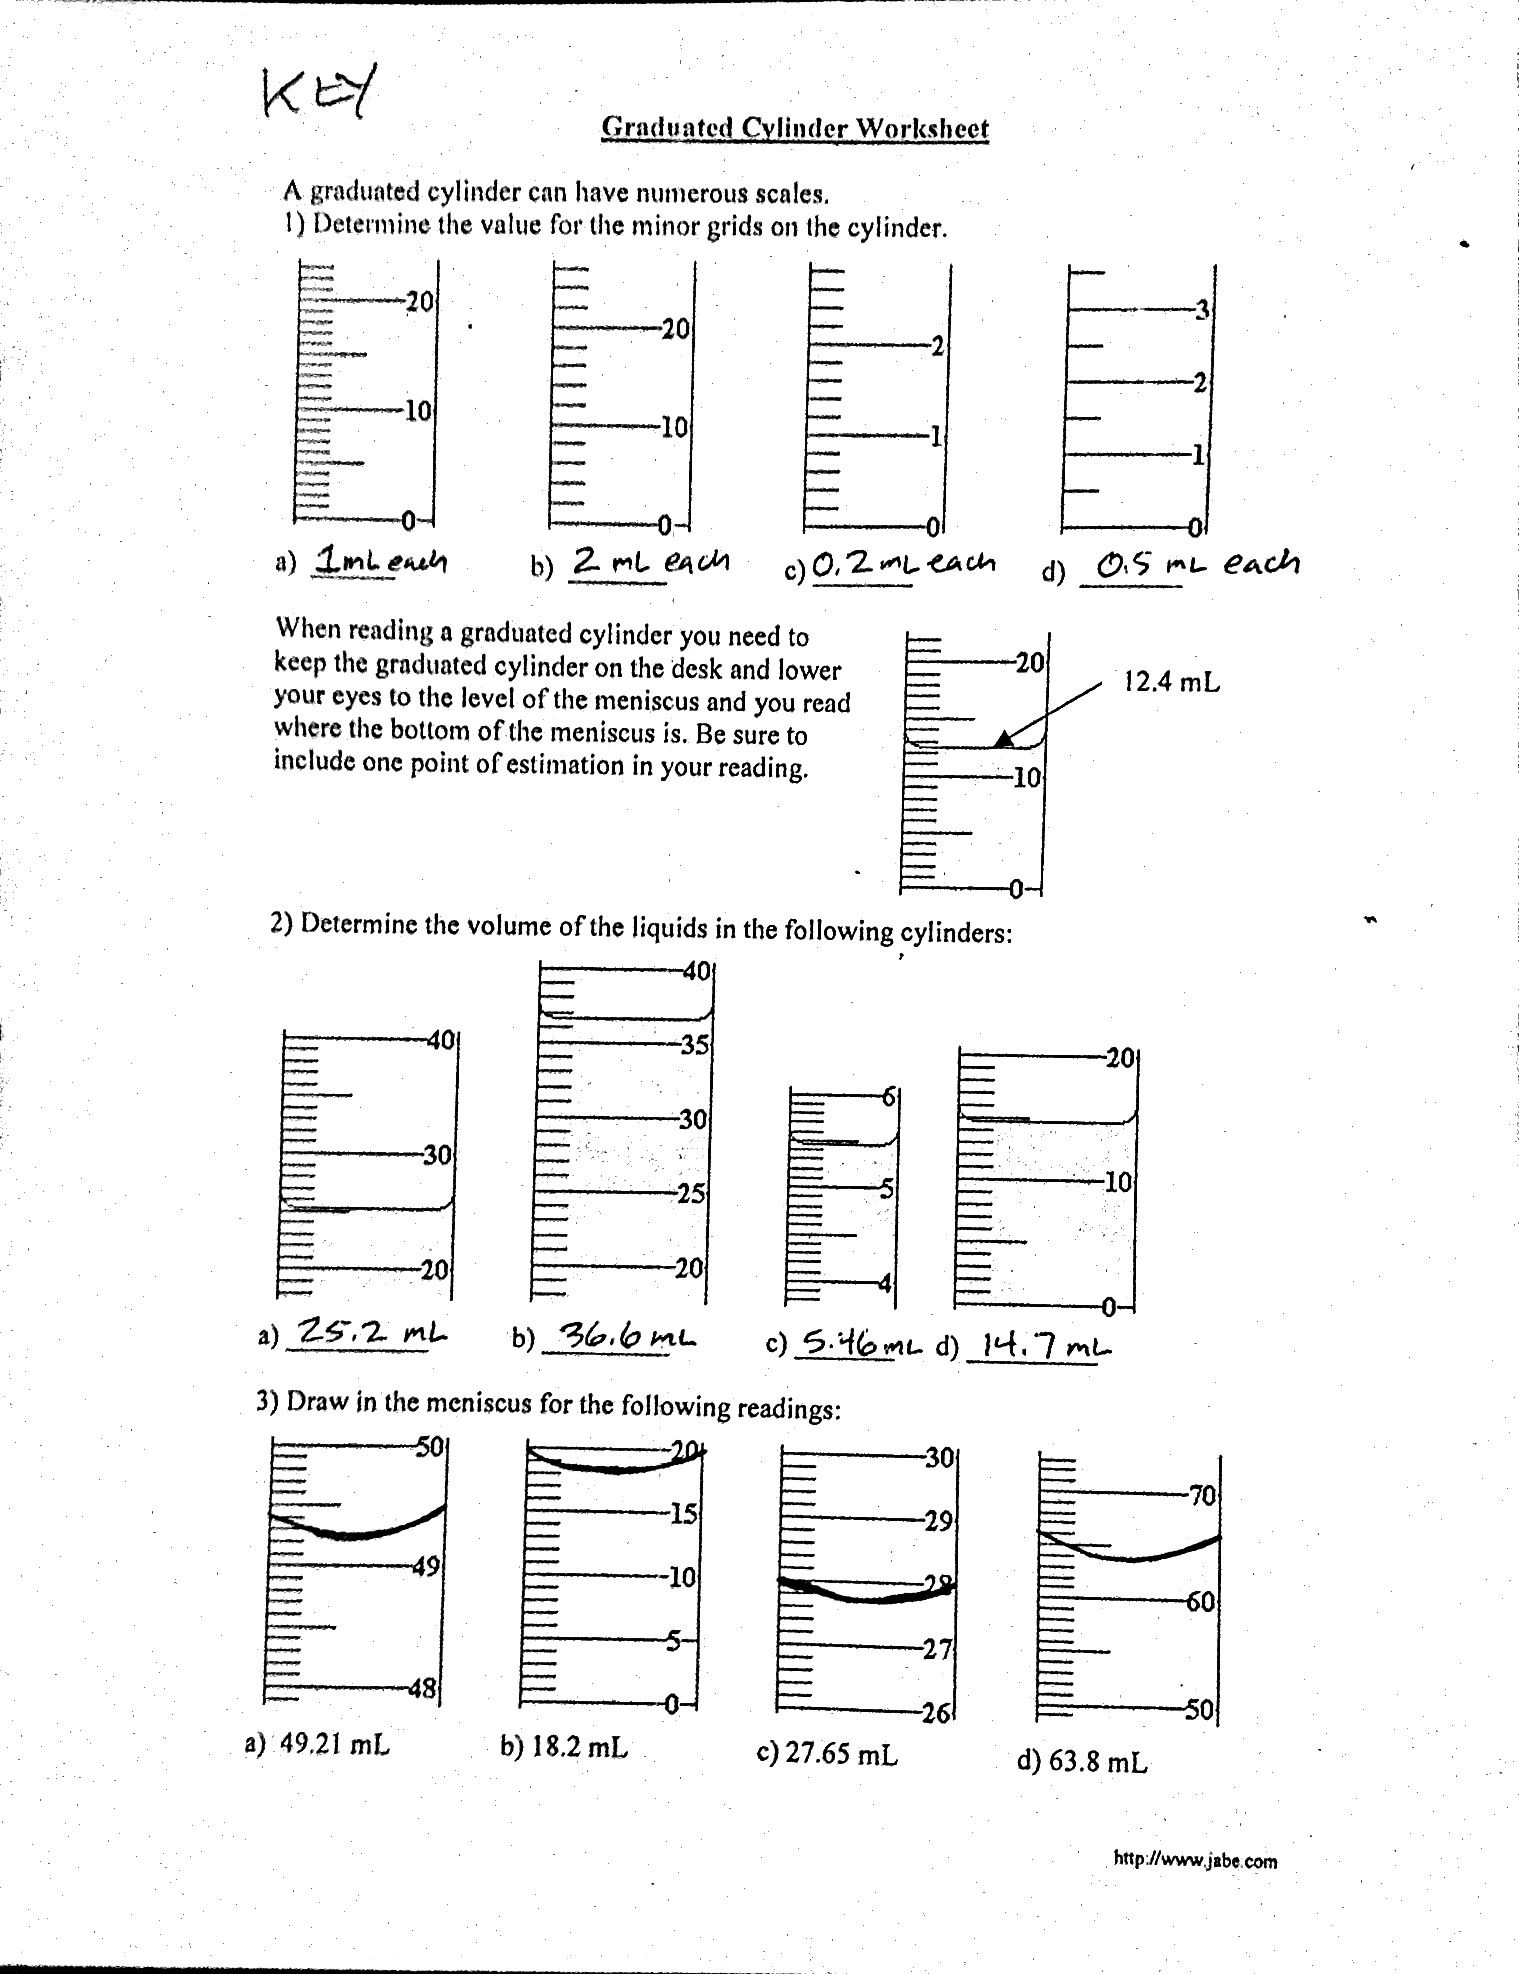 Mass and volume key graduated cylinder worksheet robcynllc Choice Image